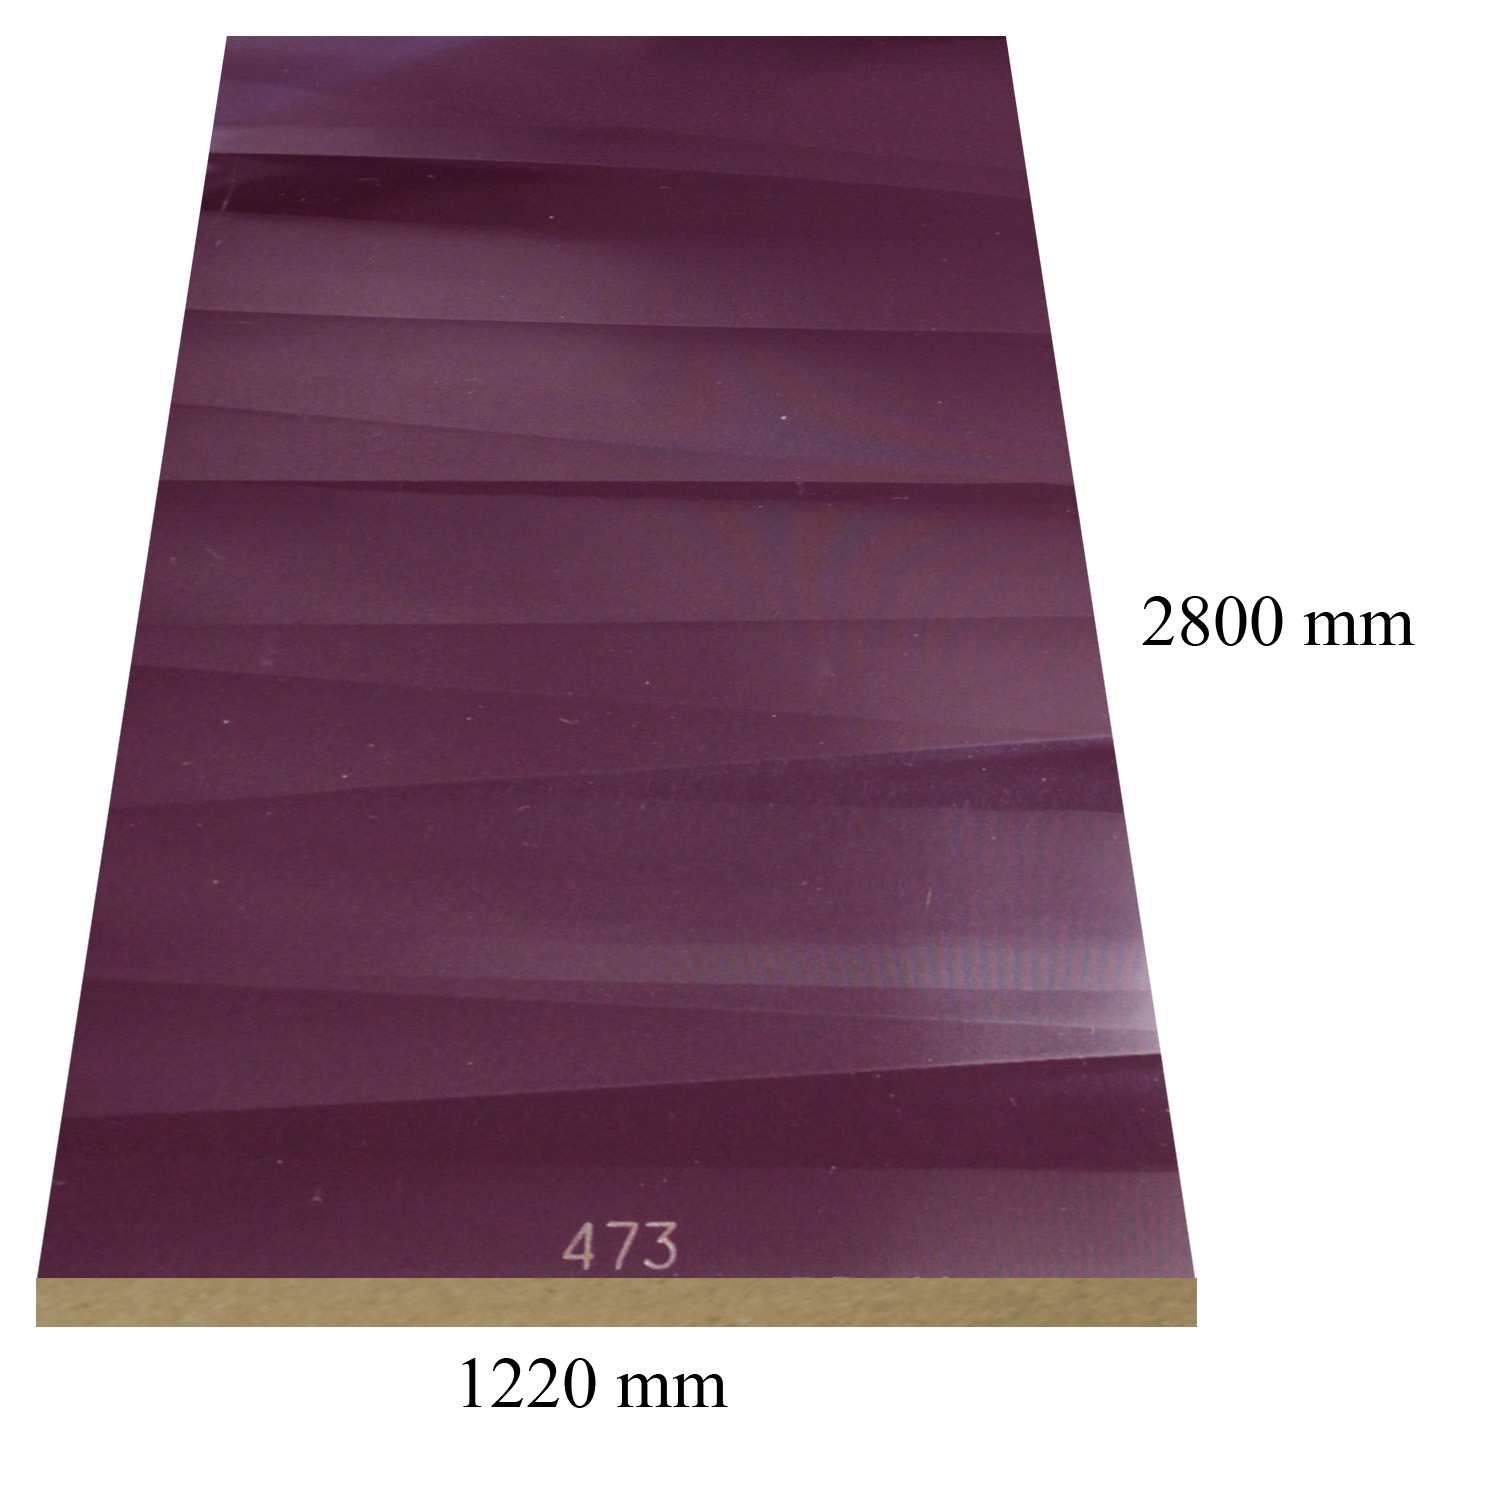 473 Sahara damson high gloss - PVC coated 18 mm MDF